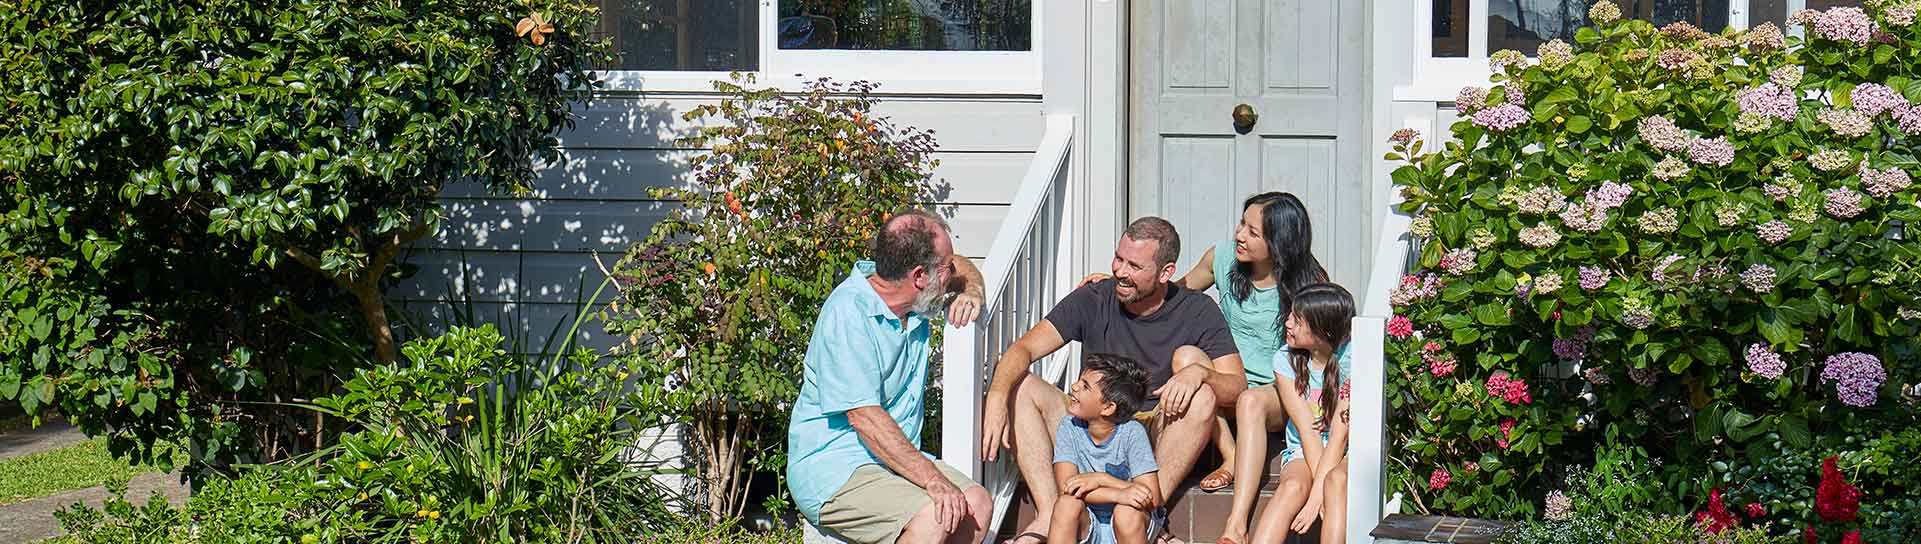 A family chatting on their front steps